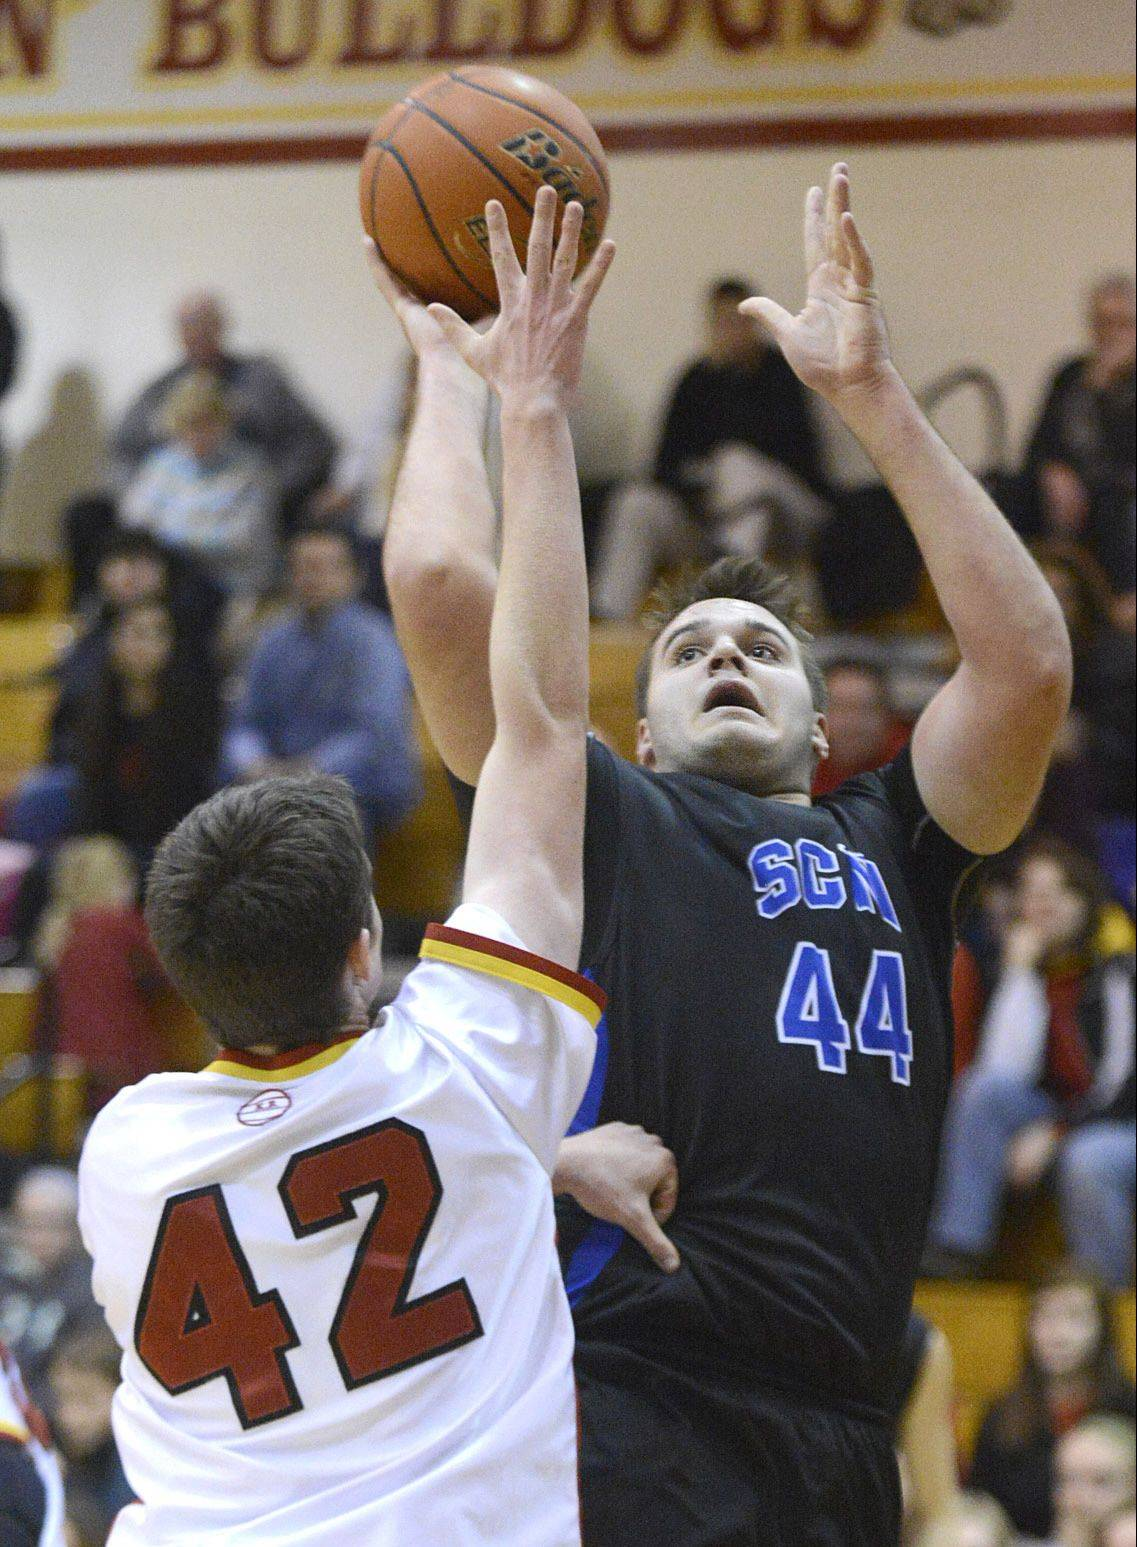 St. Charles North�s Chase Gianacakos shoots over Batavia�s Ryan Olson in the second quarter on Friday in Batavia.